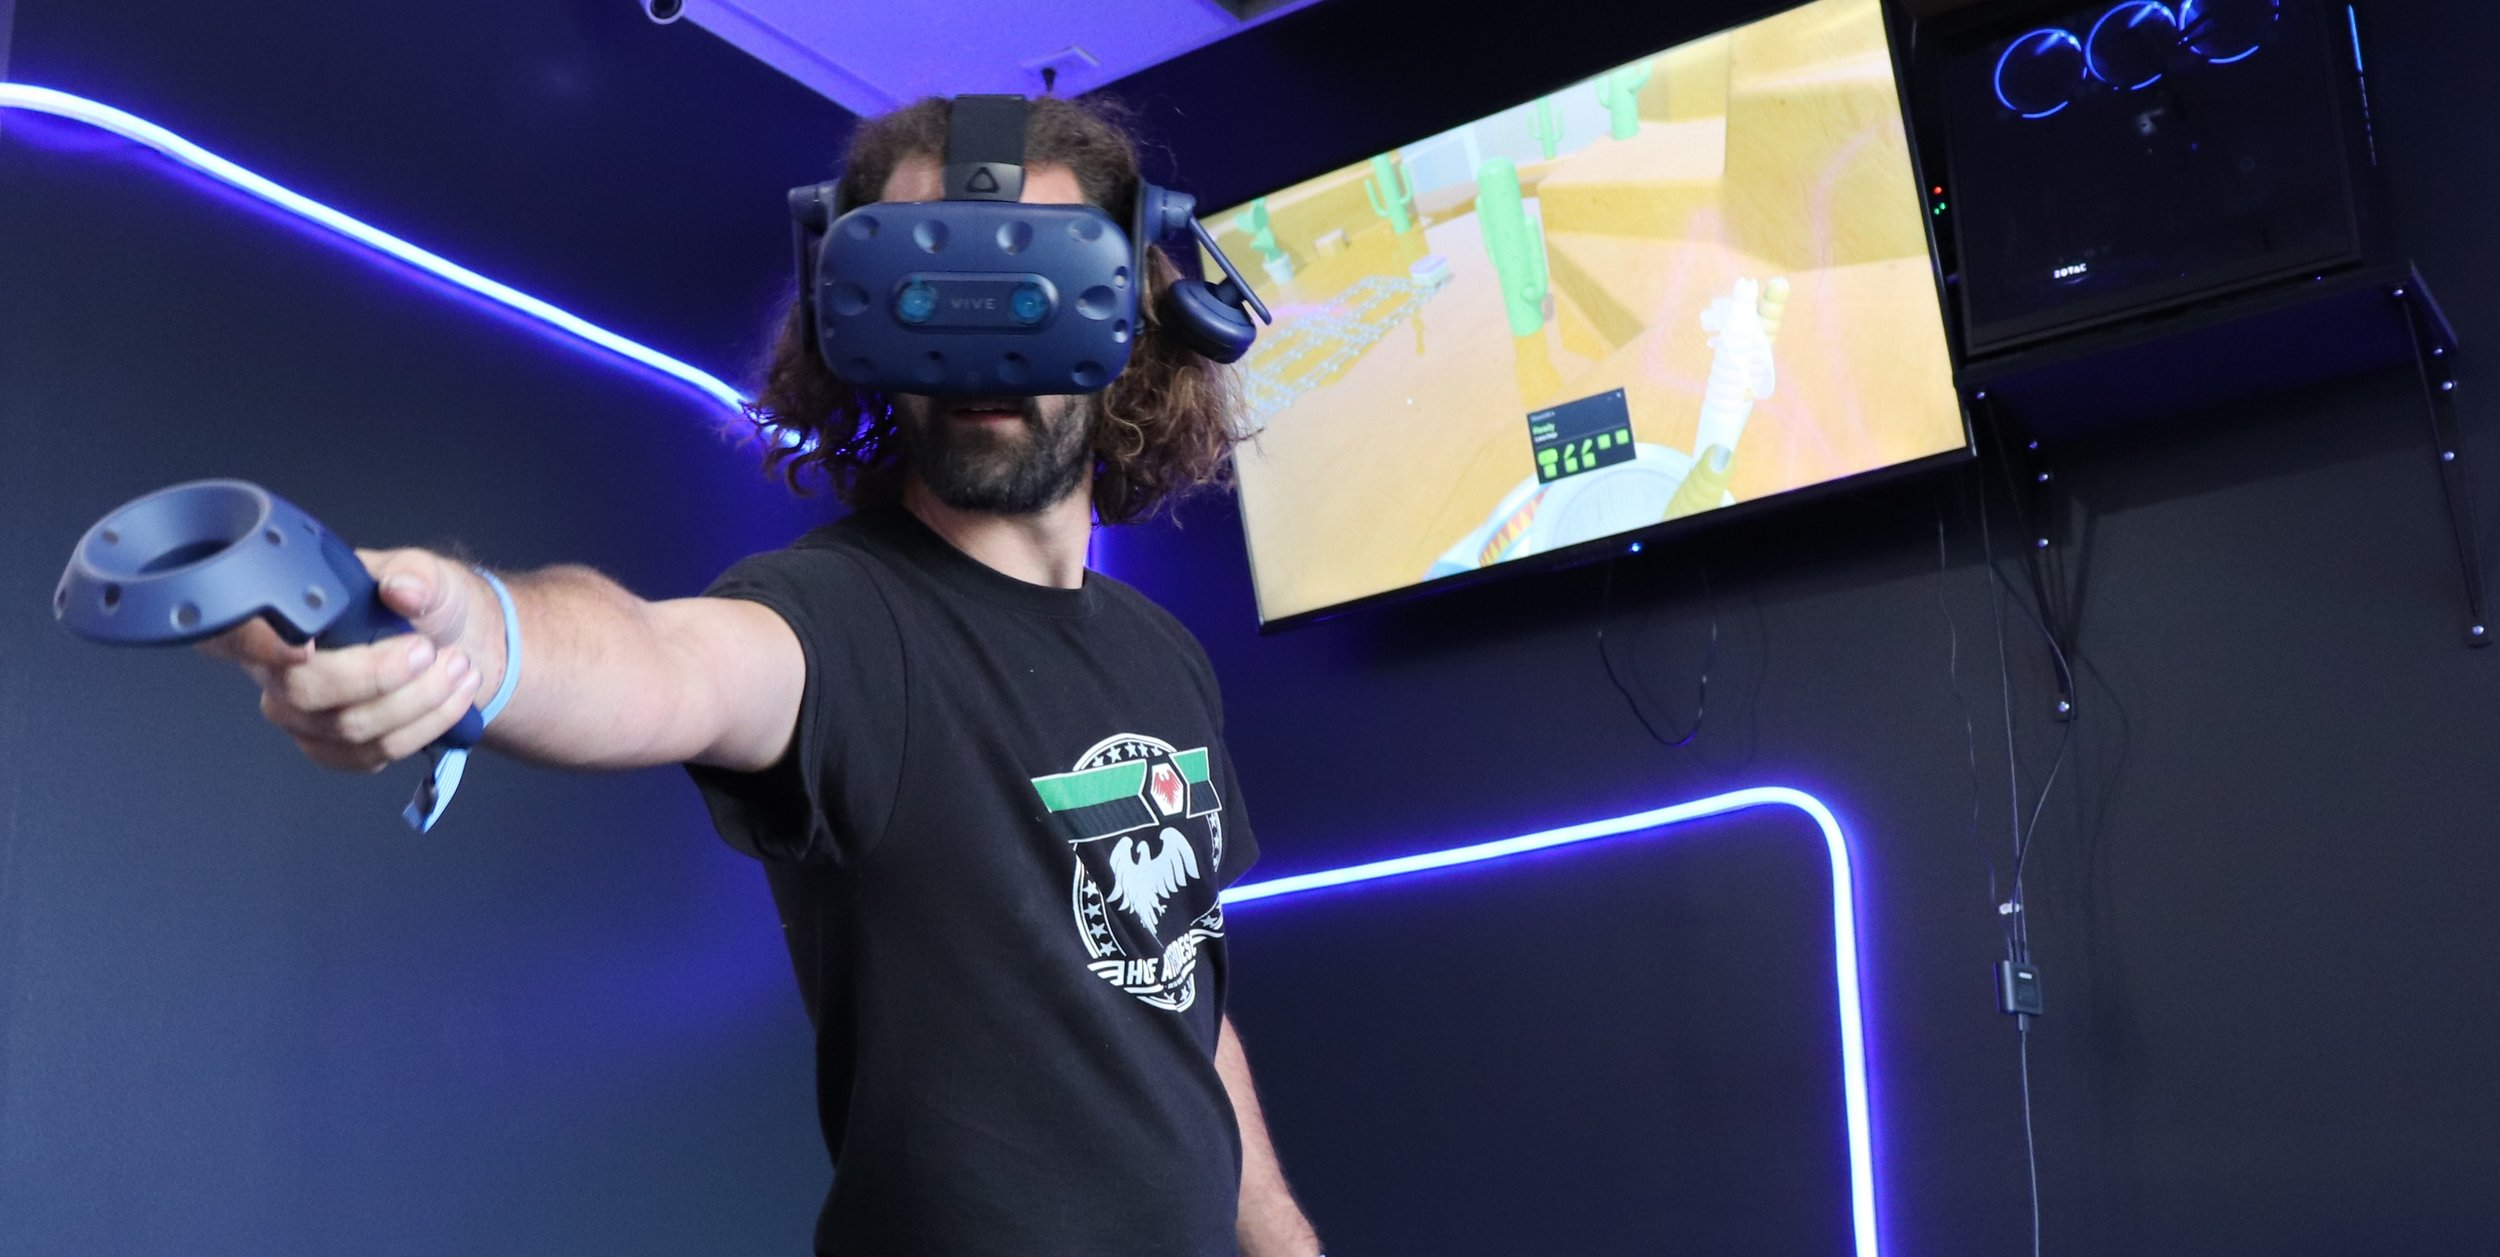 Photo of a player in a VR game called Loco Dojo which is a Virtual Reality party game for groups playing at Digital Worlds arcade in Franklin Tennessee.